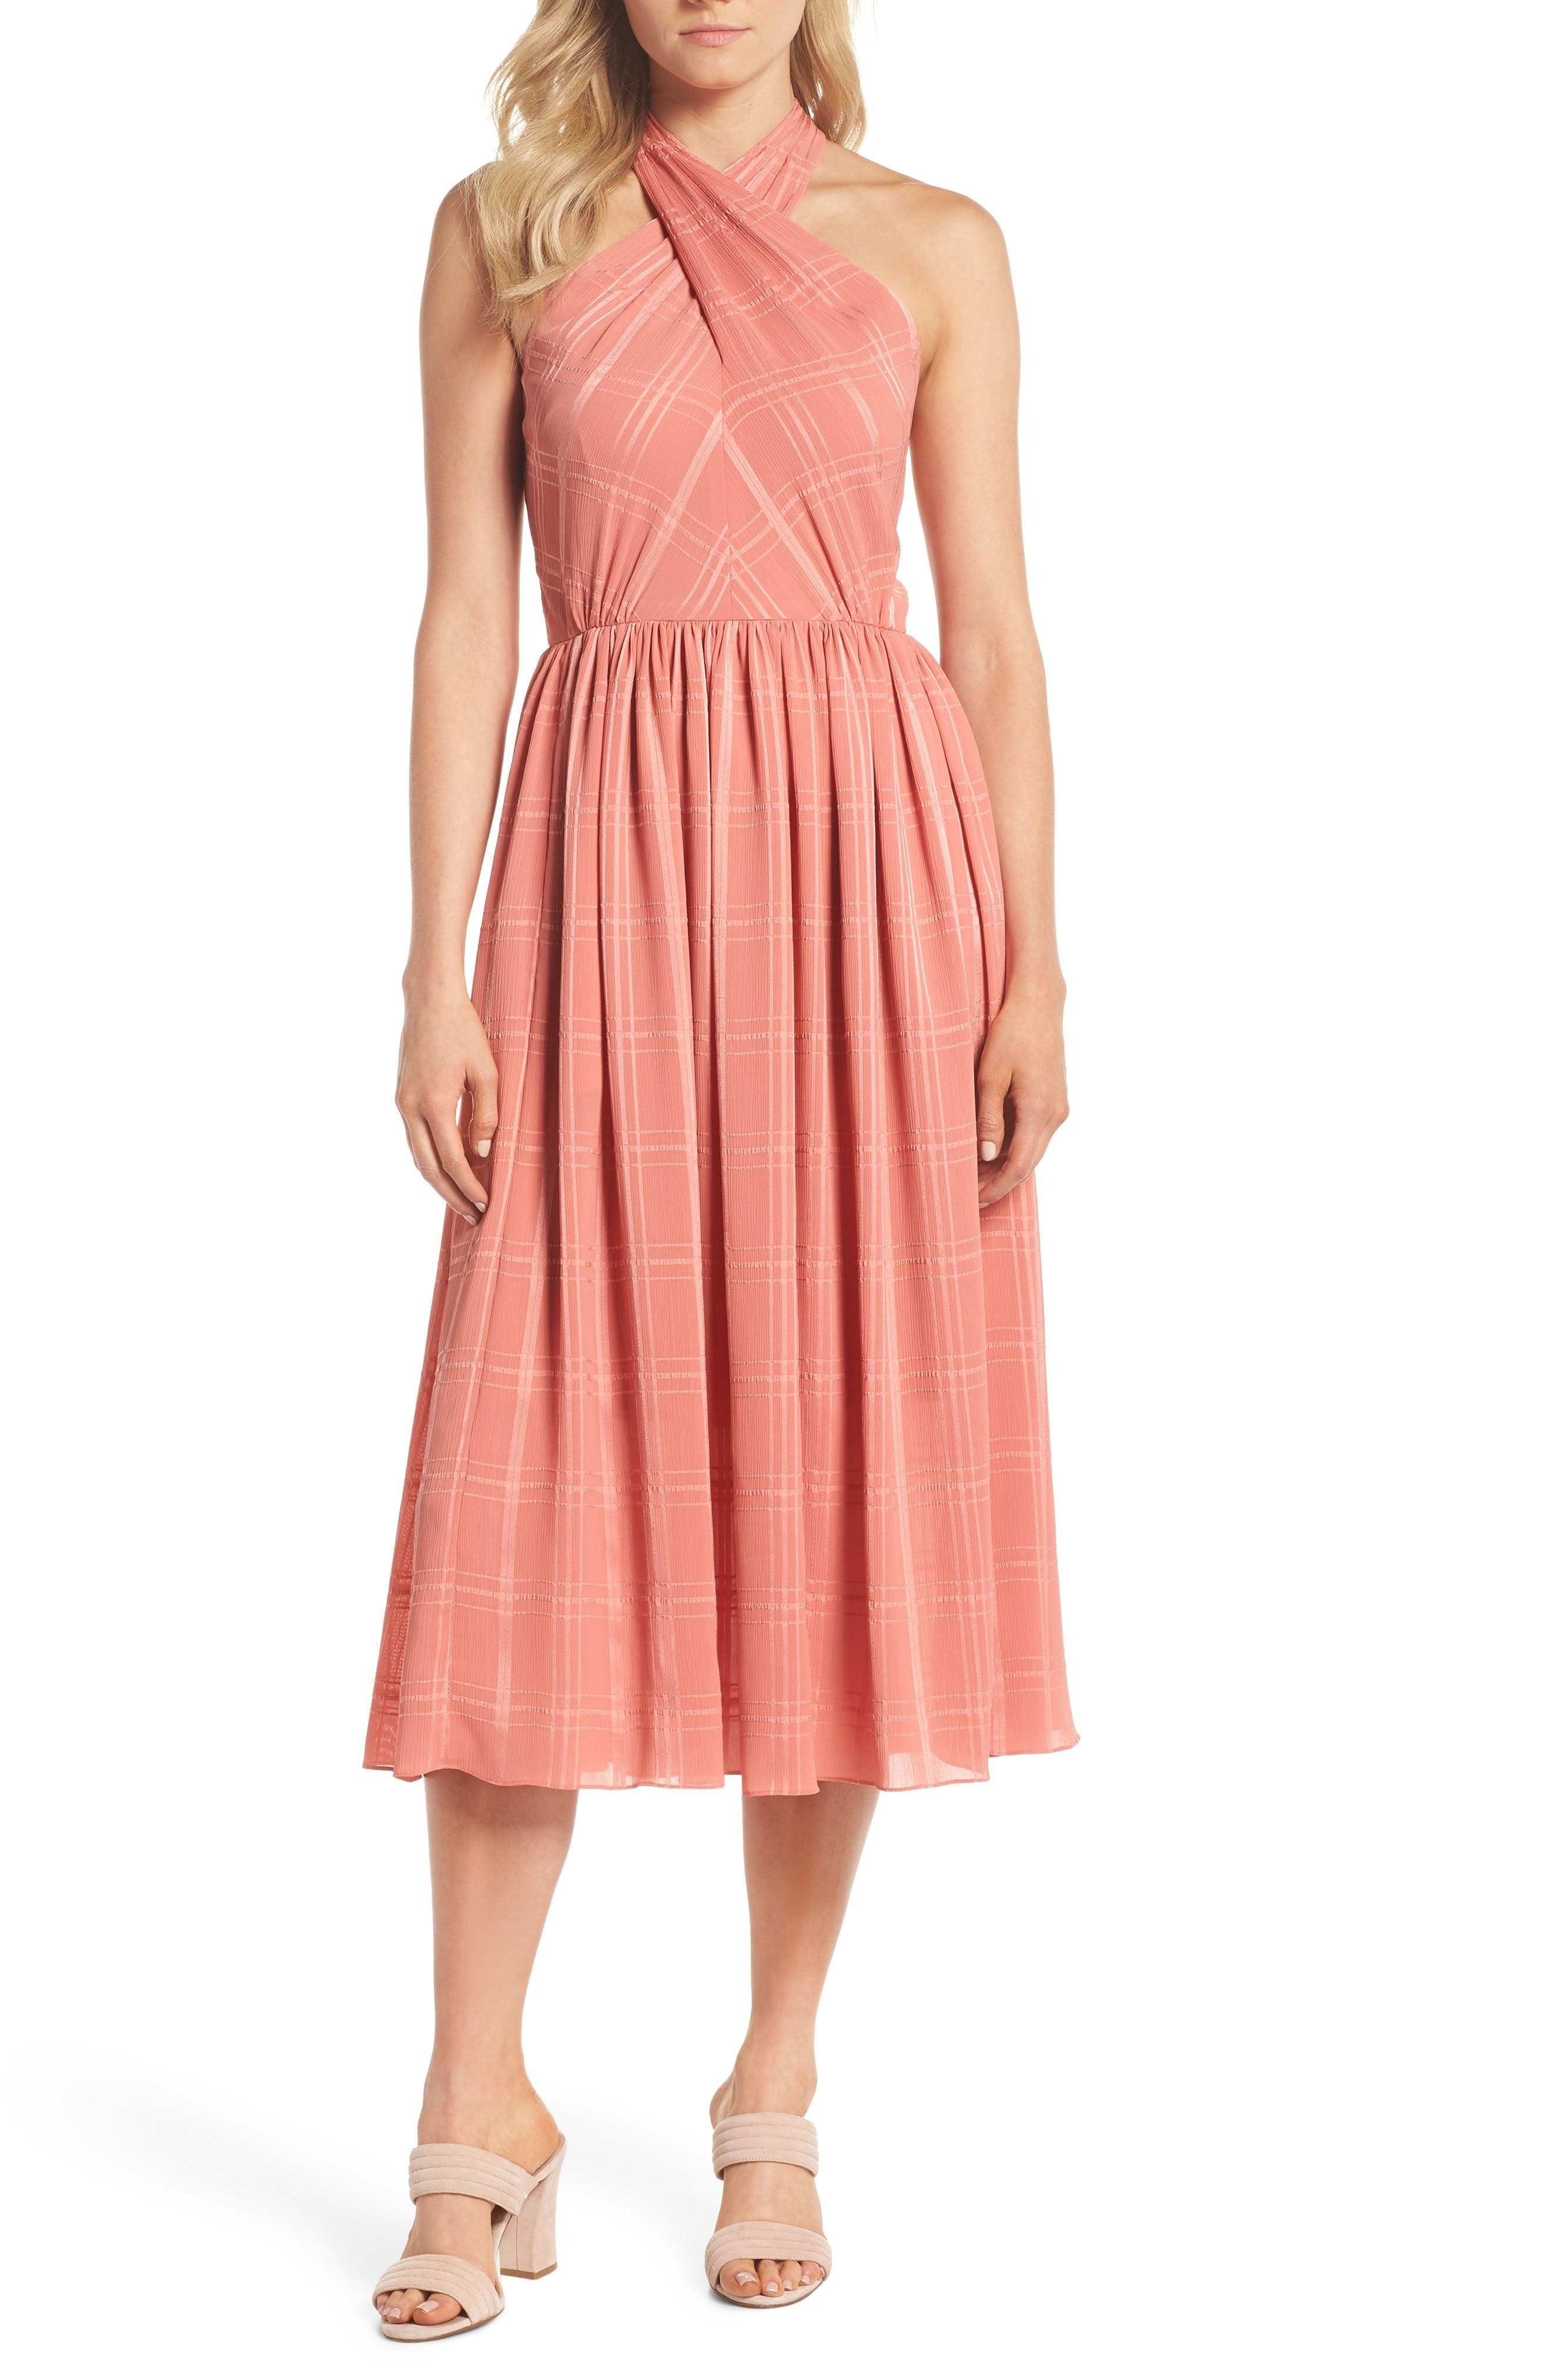 Mia Twist Chiffon Midi Dress,                             Main thumbnail 1, color,                             681